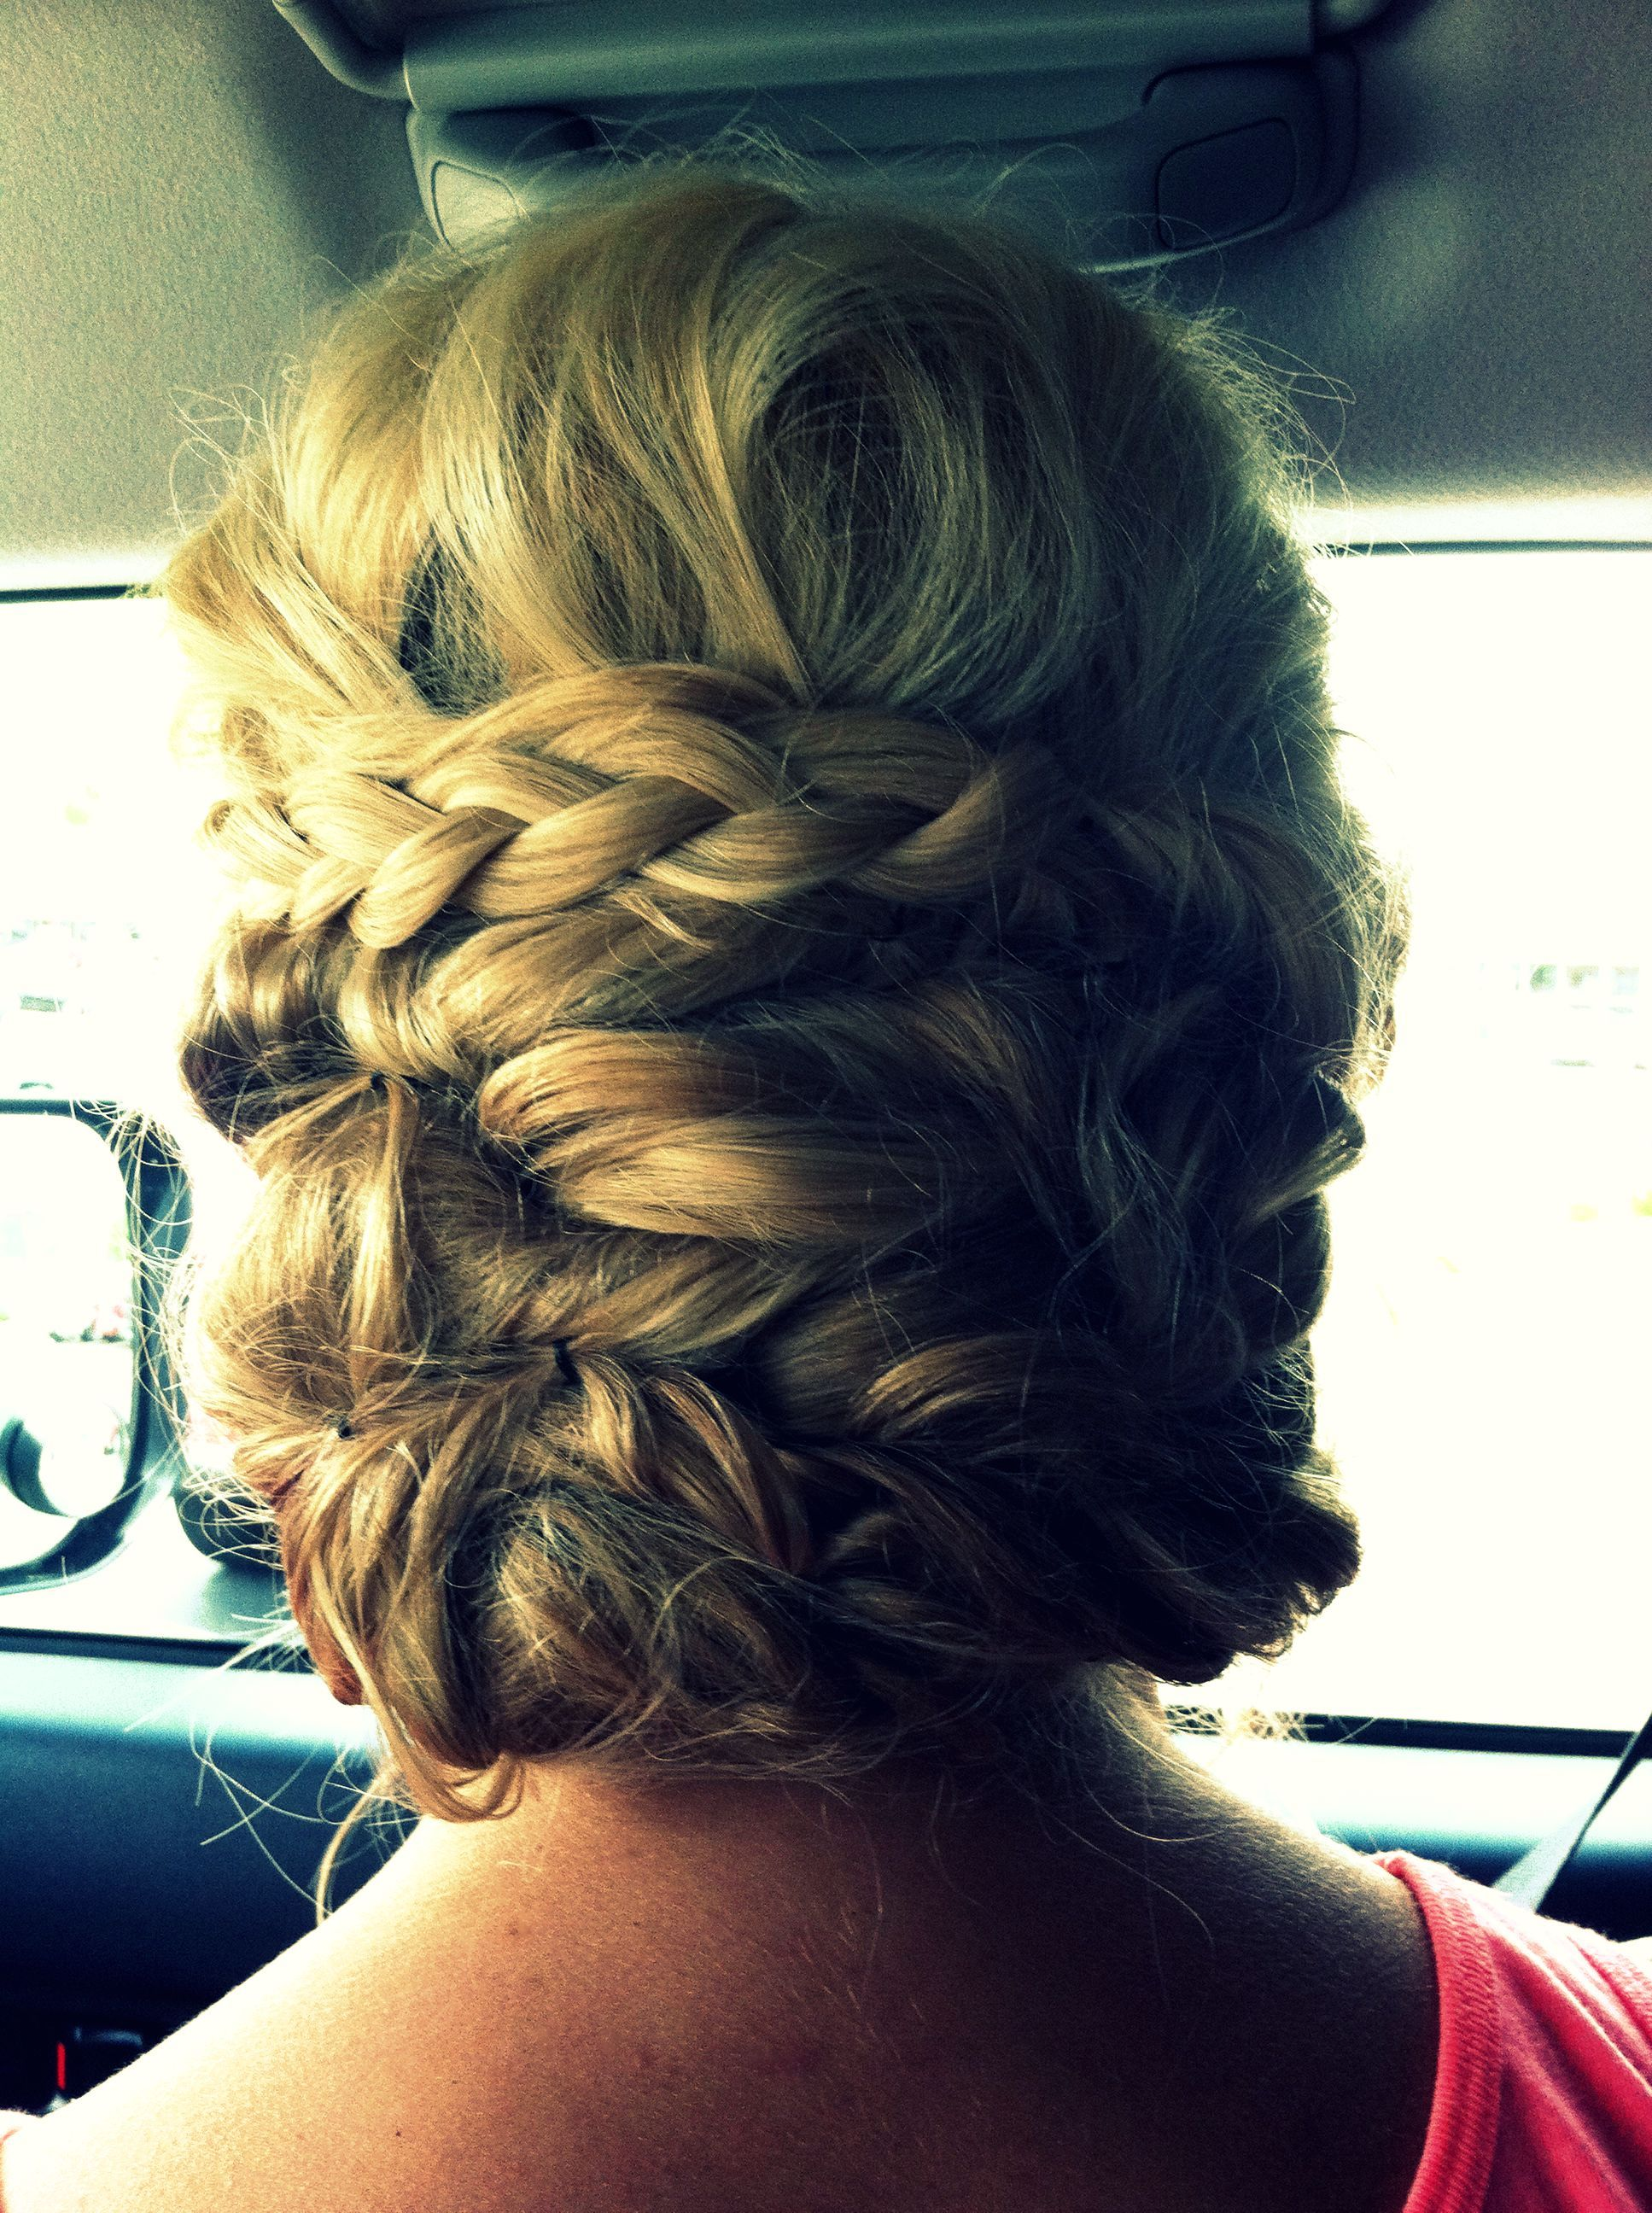 Prom Hair Loved It M Y W O R K Pinterest Prom Hair Prom And